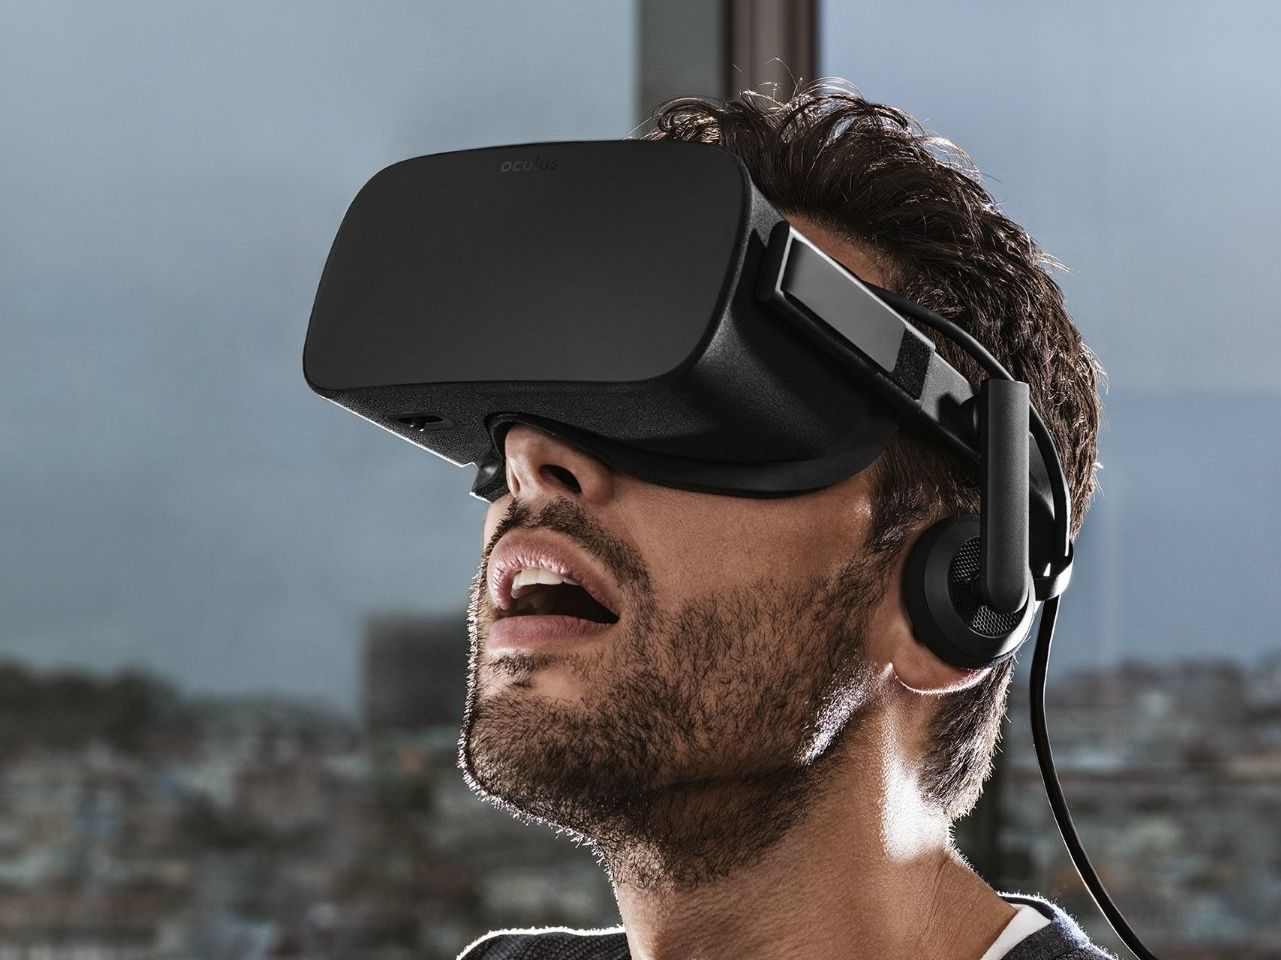 Le Meilleur The Oculus Rift Will Launch With 30 Vr Games On March 28 Ce Mois Ci